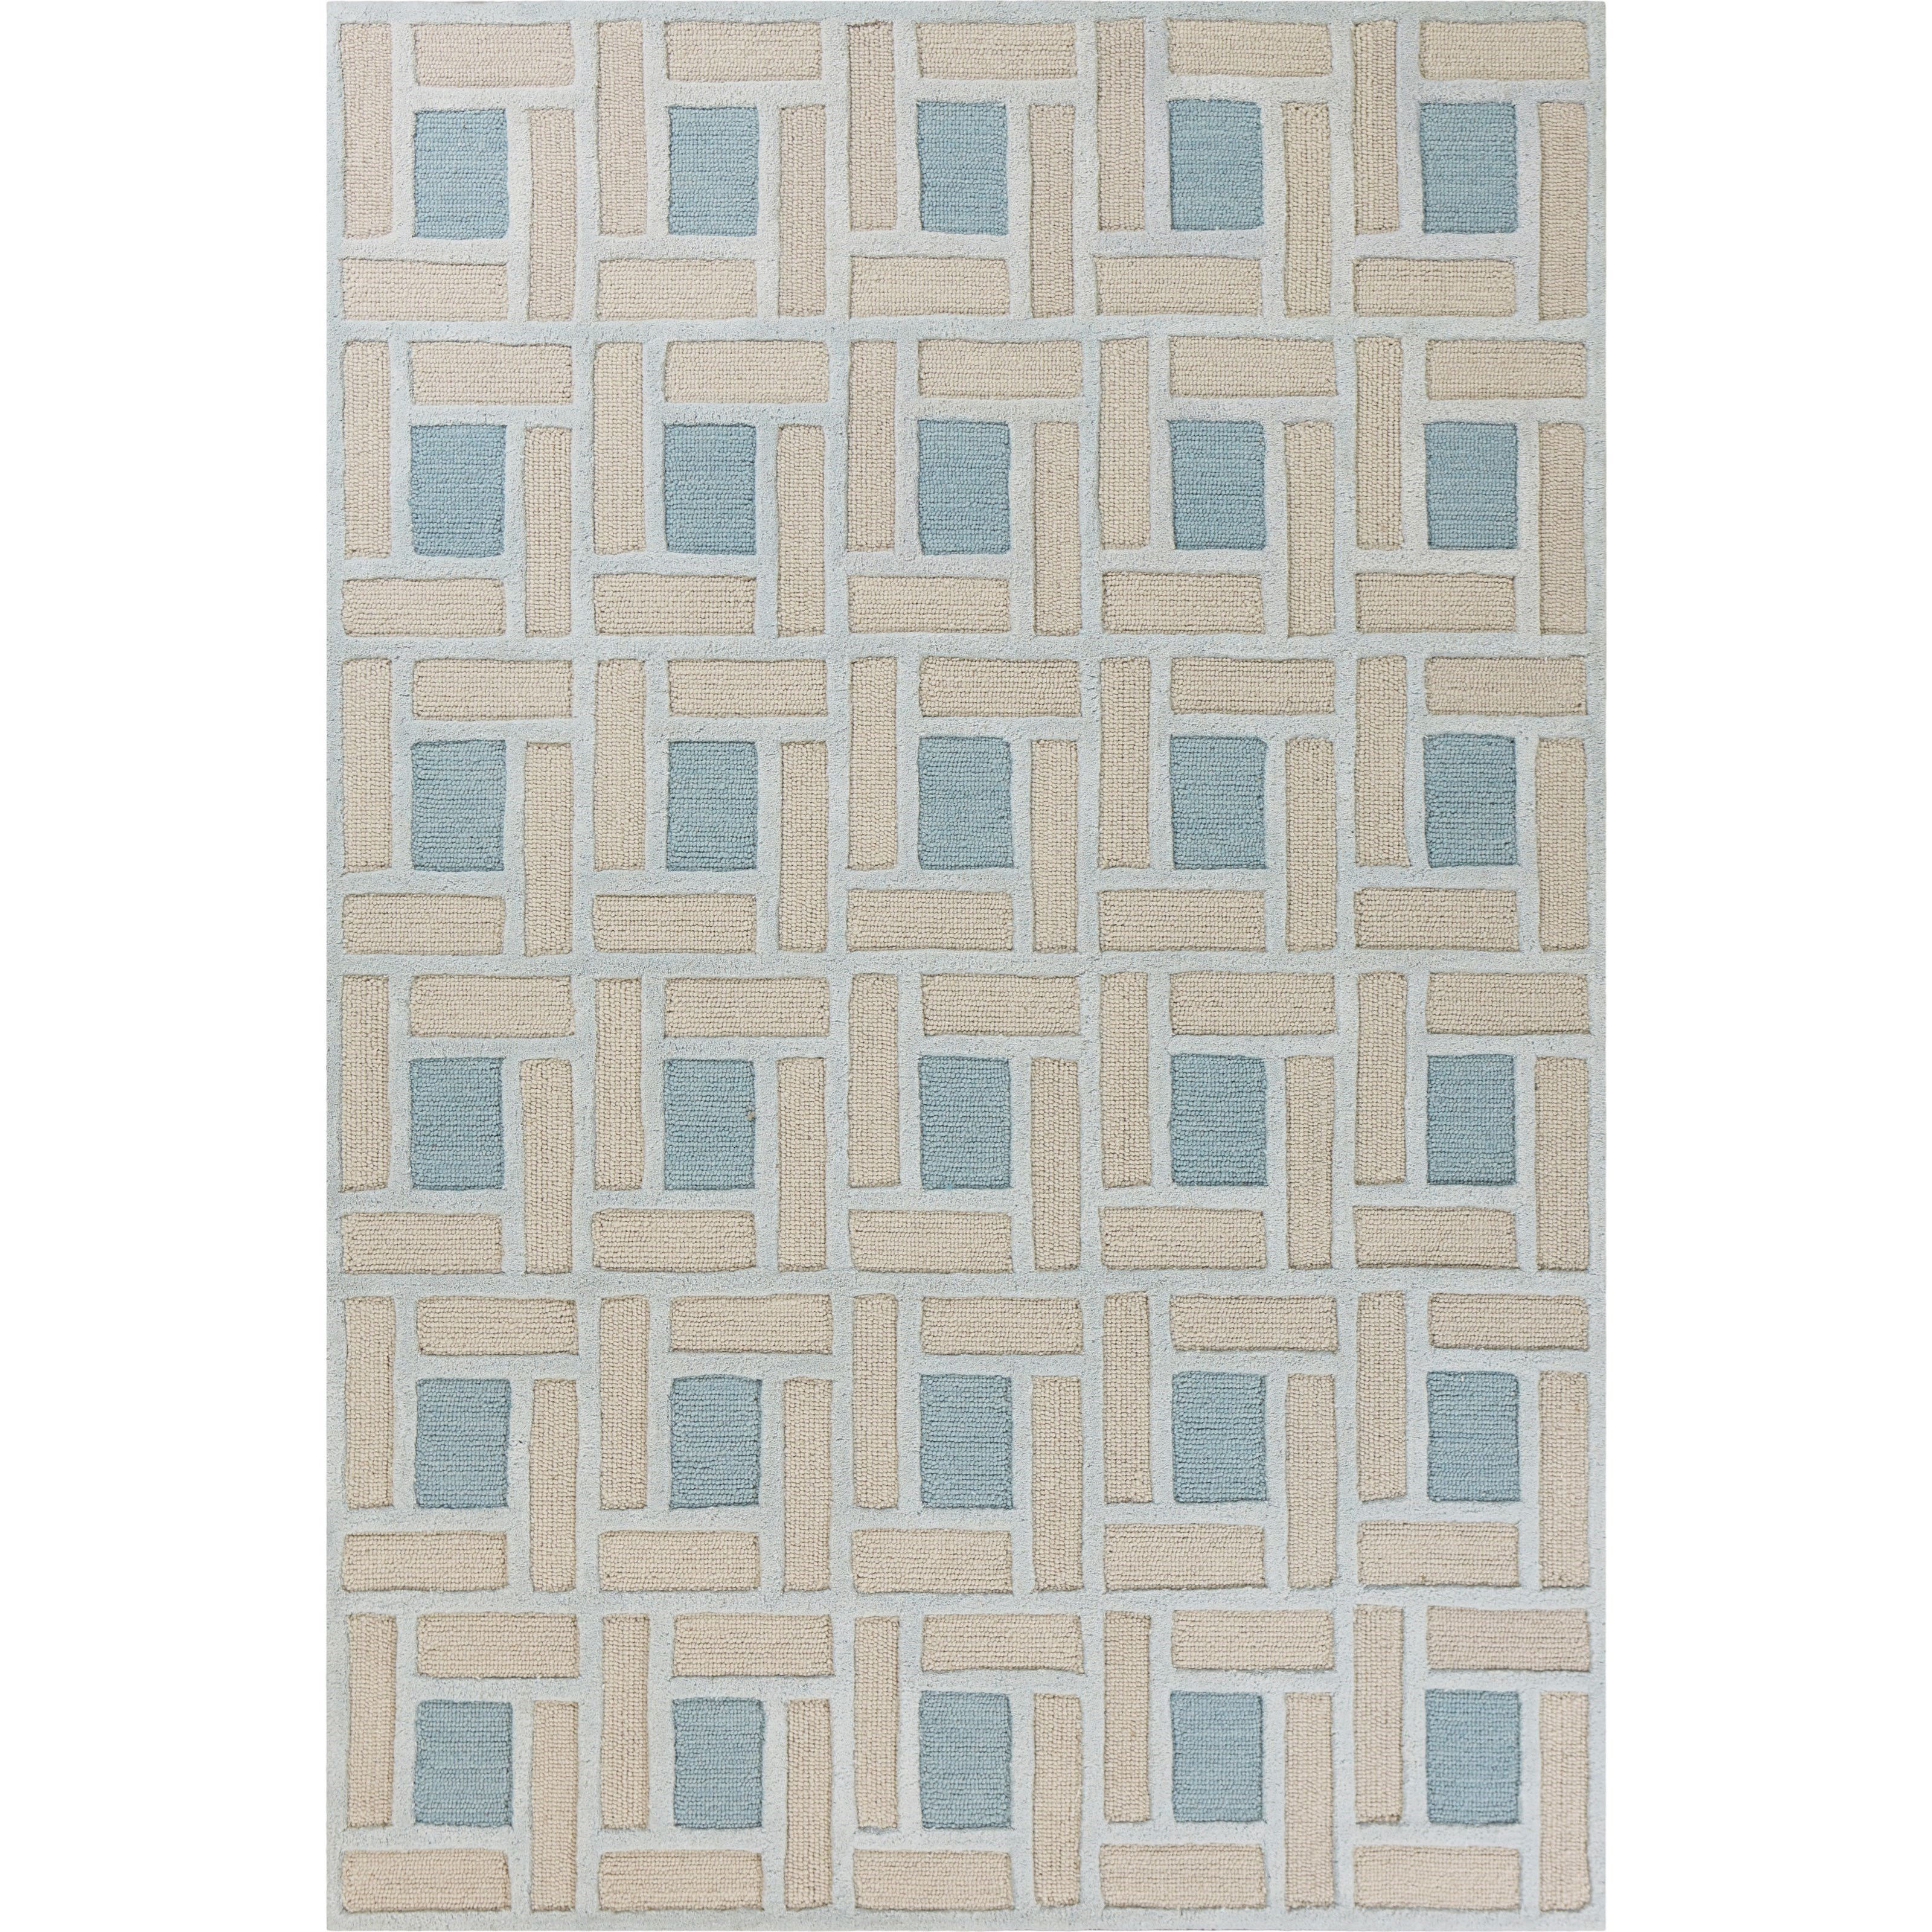 """Libby Langdon Soho 9'6"""" X 8'6"""" Area Rug by Kas at Wilson's Furniture"""